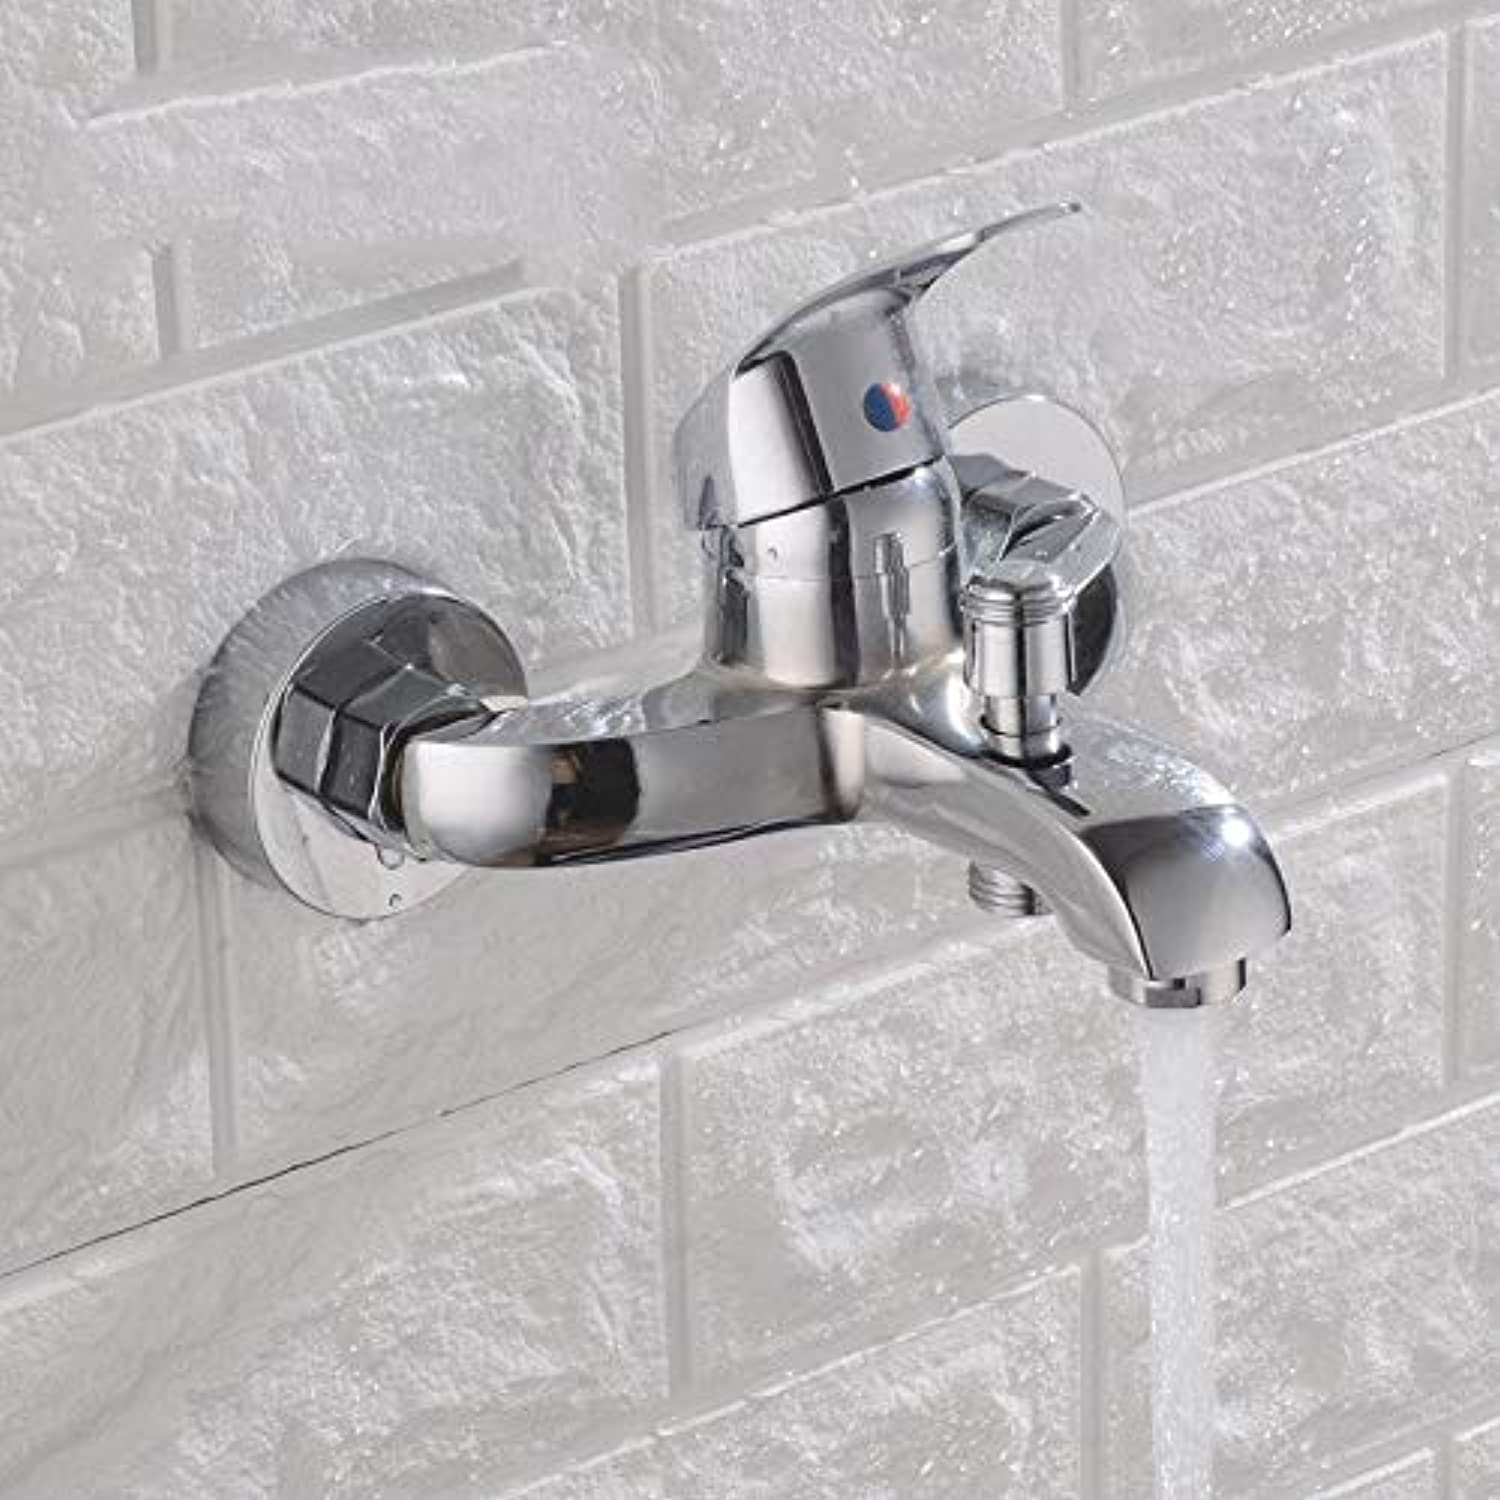 redOOY Taps Zinc Alloy Faucet Shower Faucet Bathroom Hot And Cold Mixing Valve